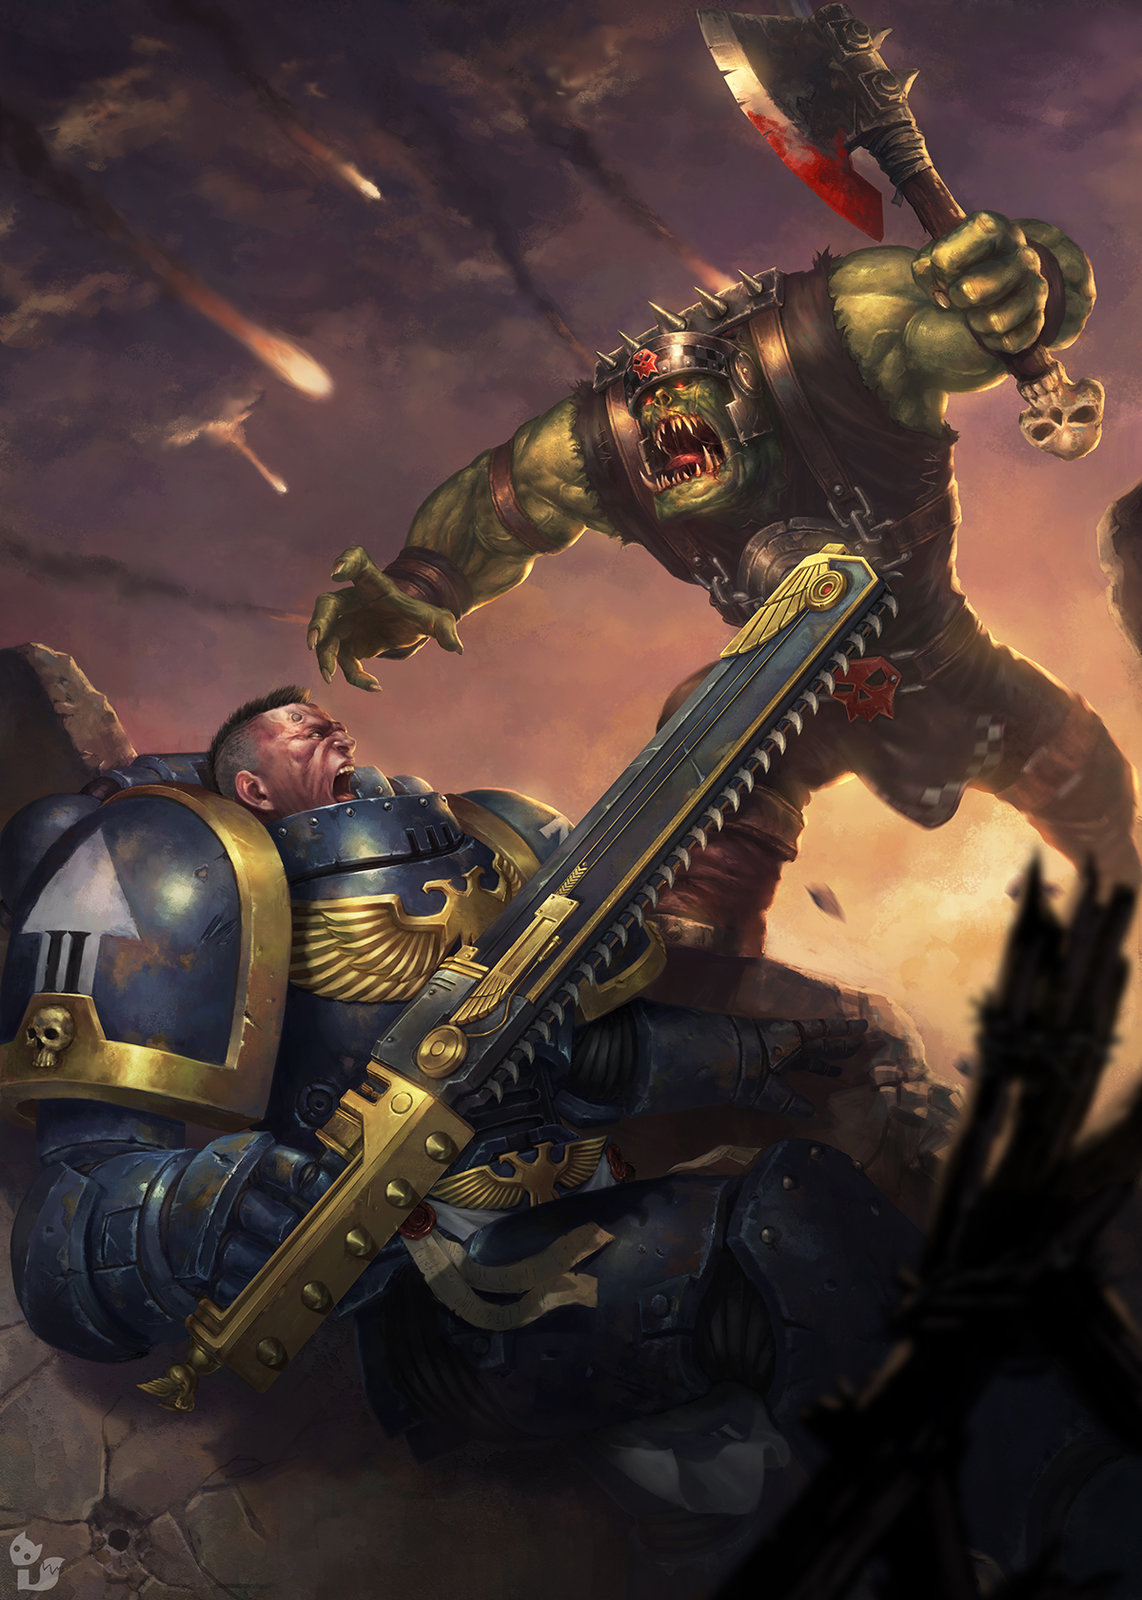 Spacemarine vs Ork